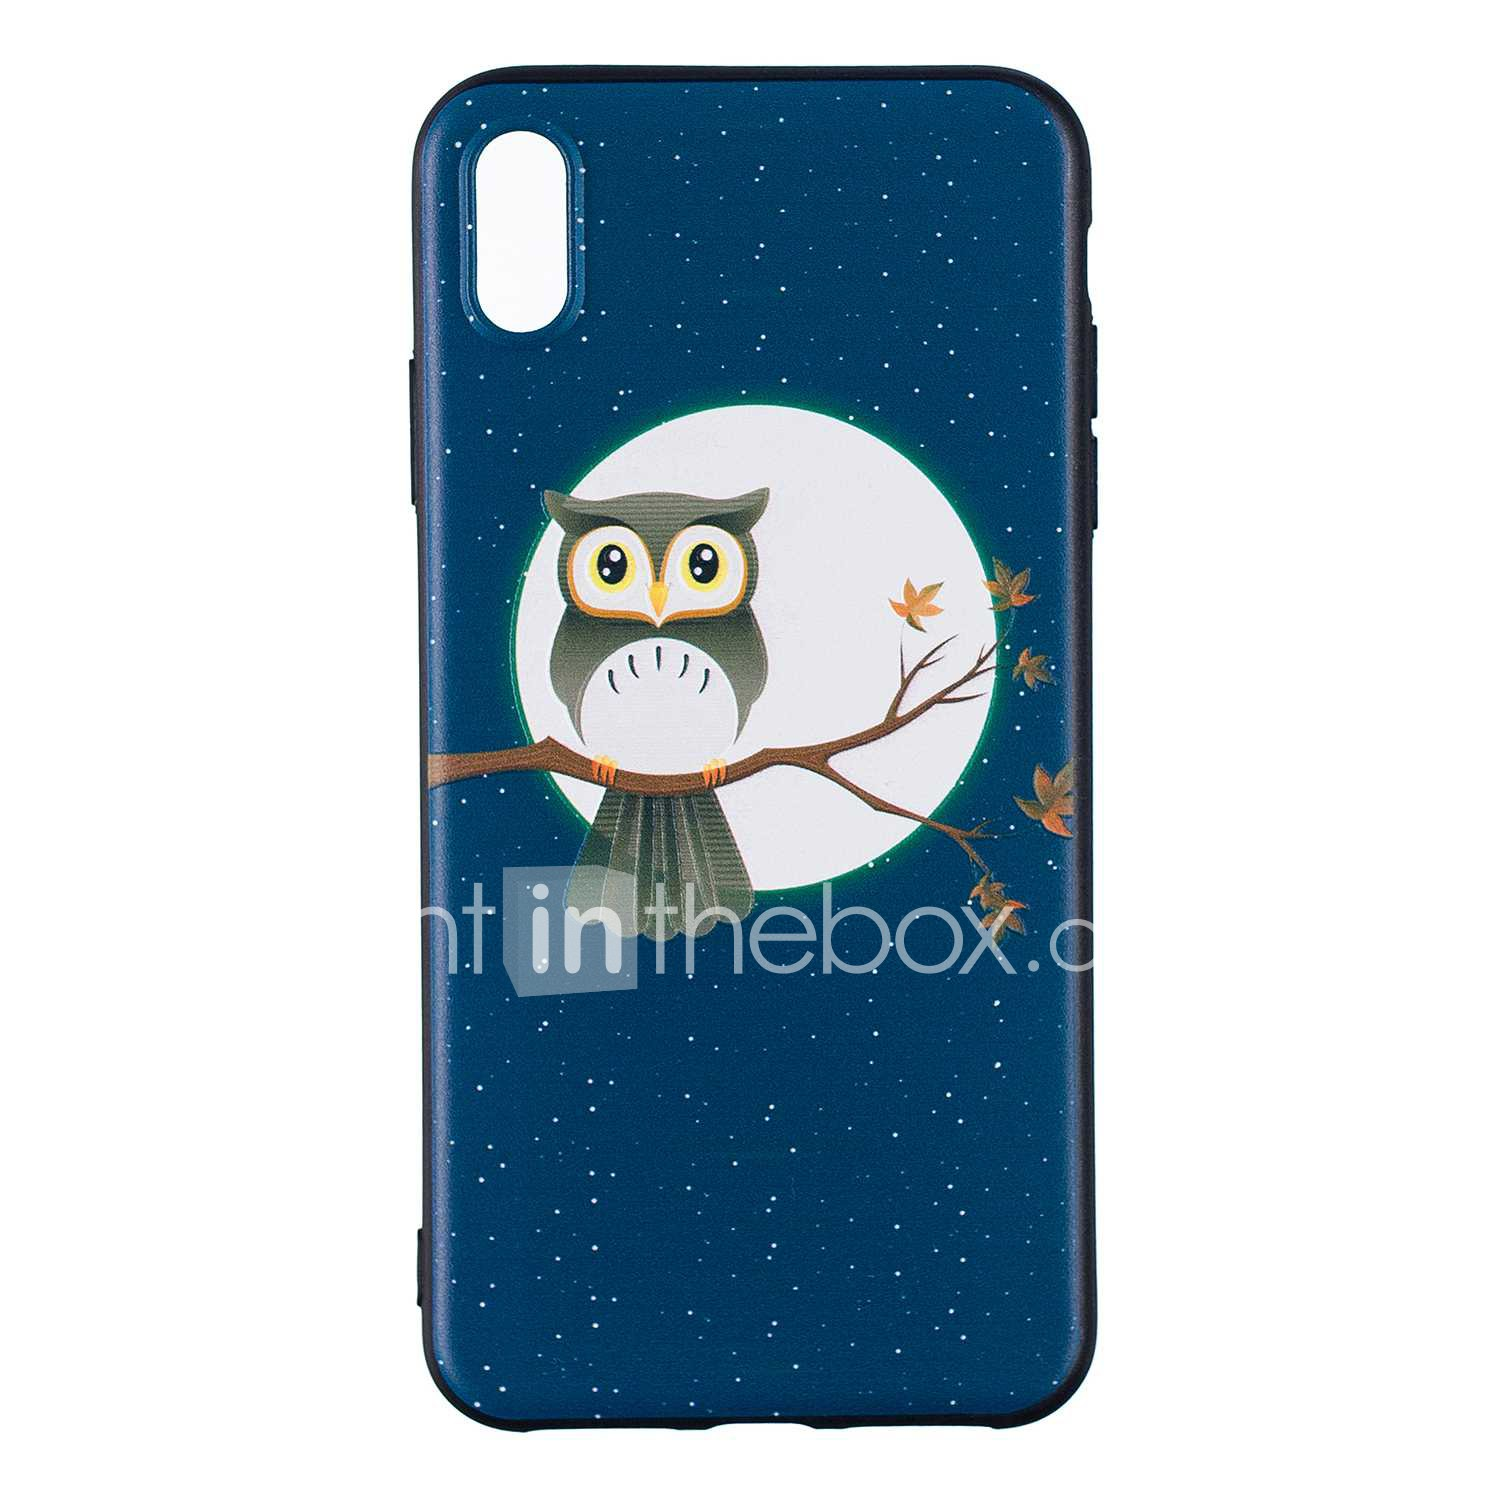 coque iphone xr chouette